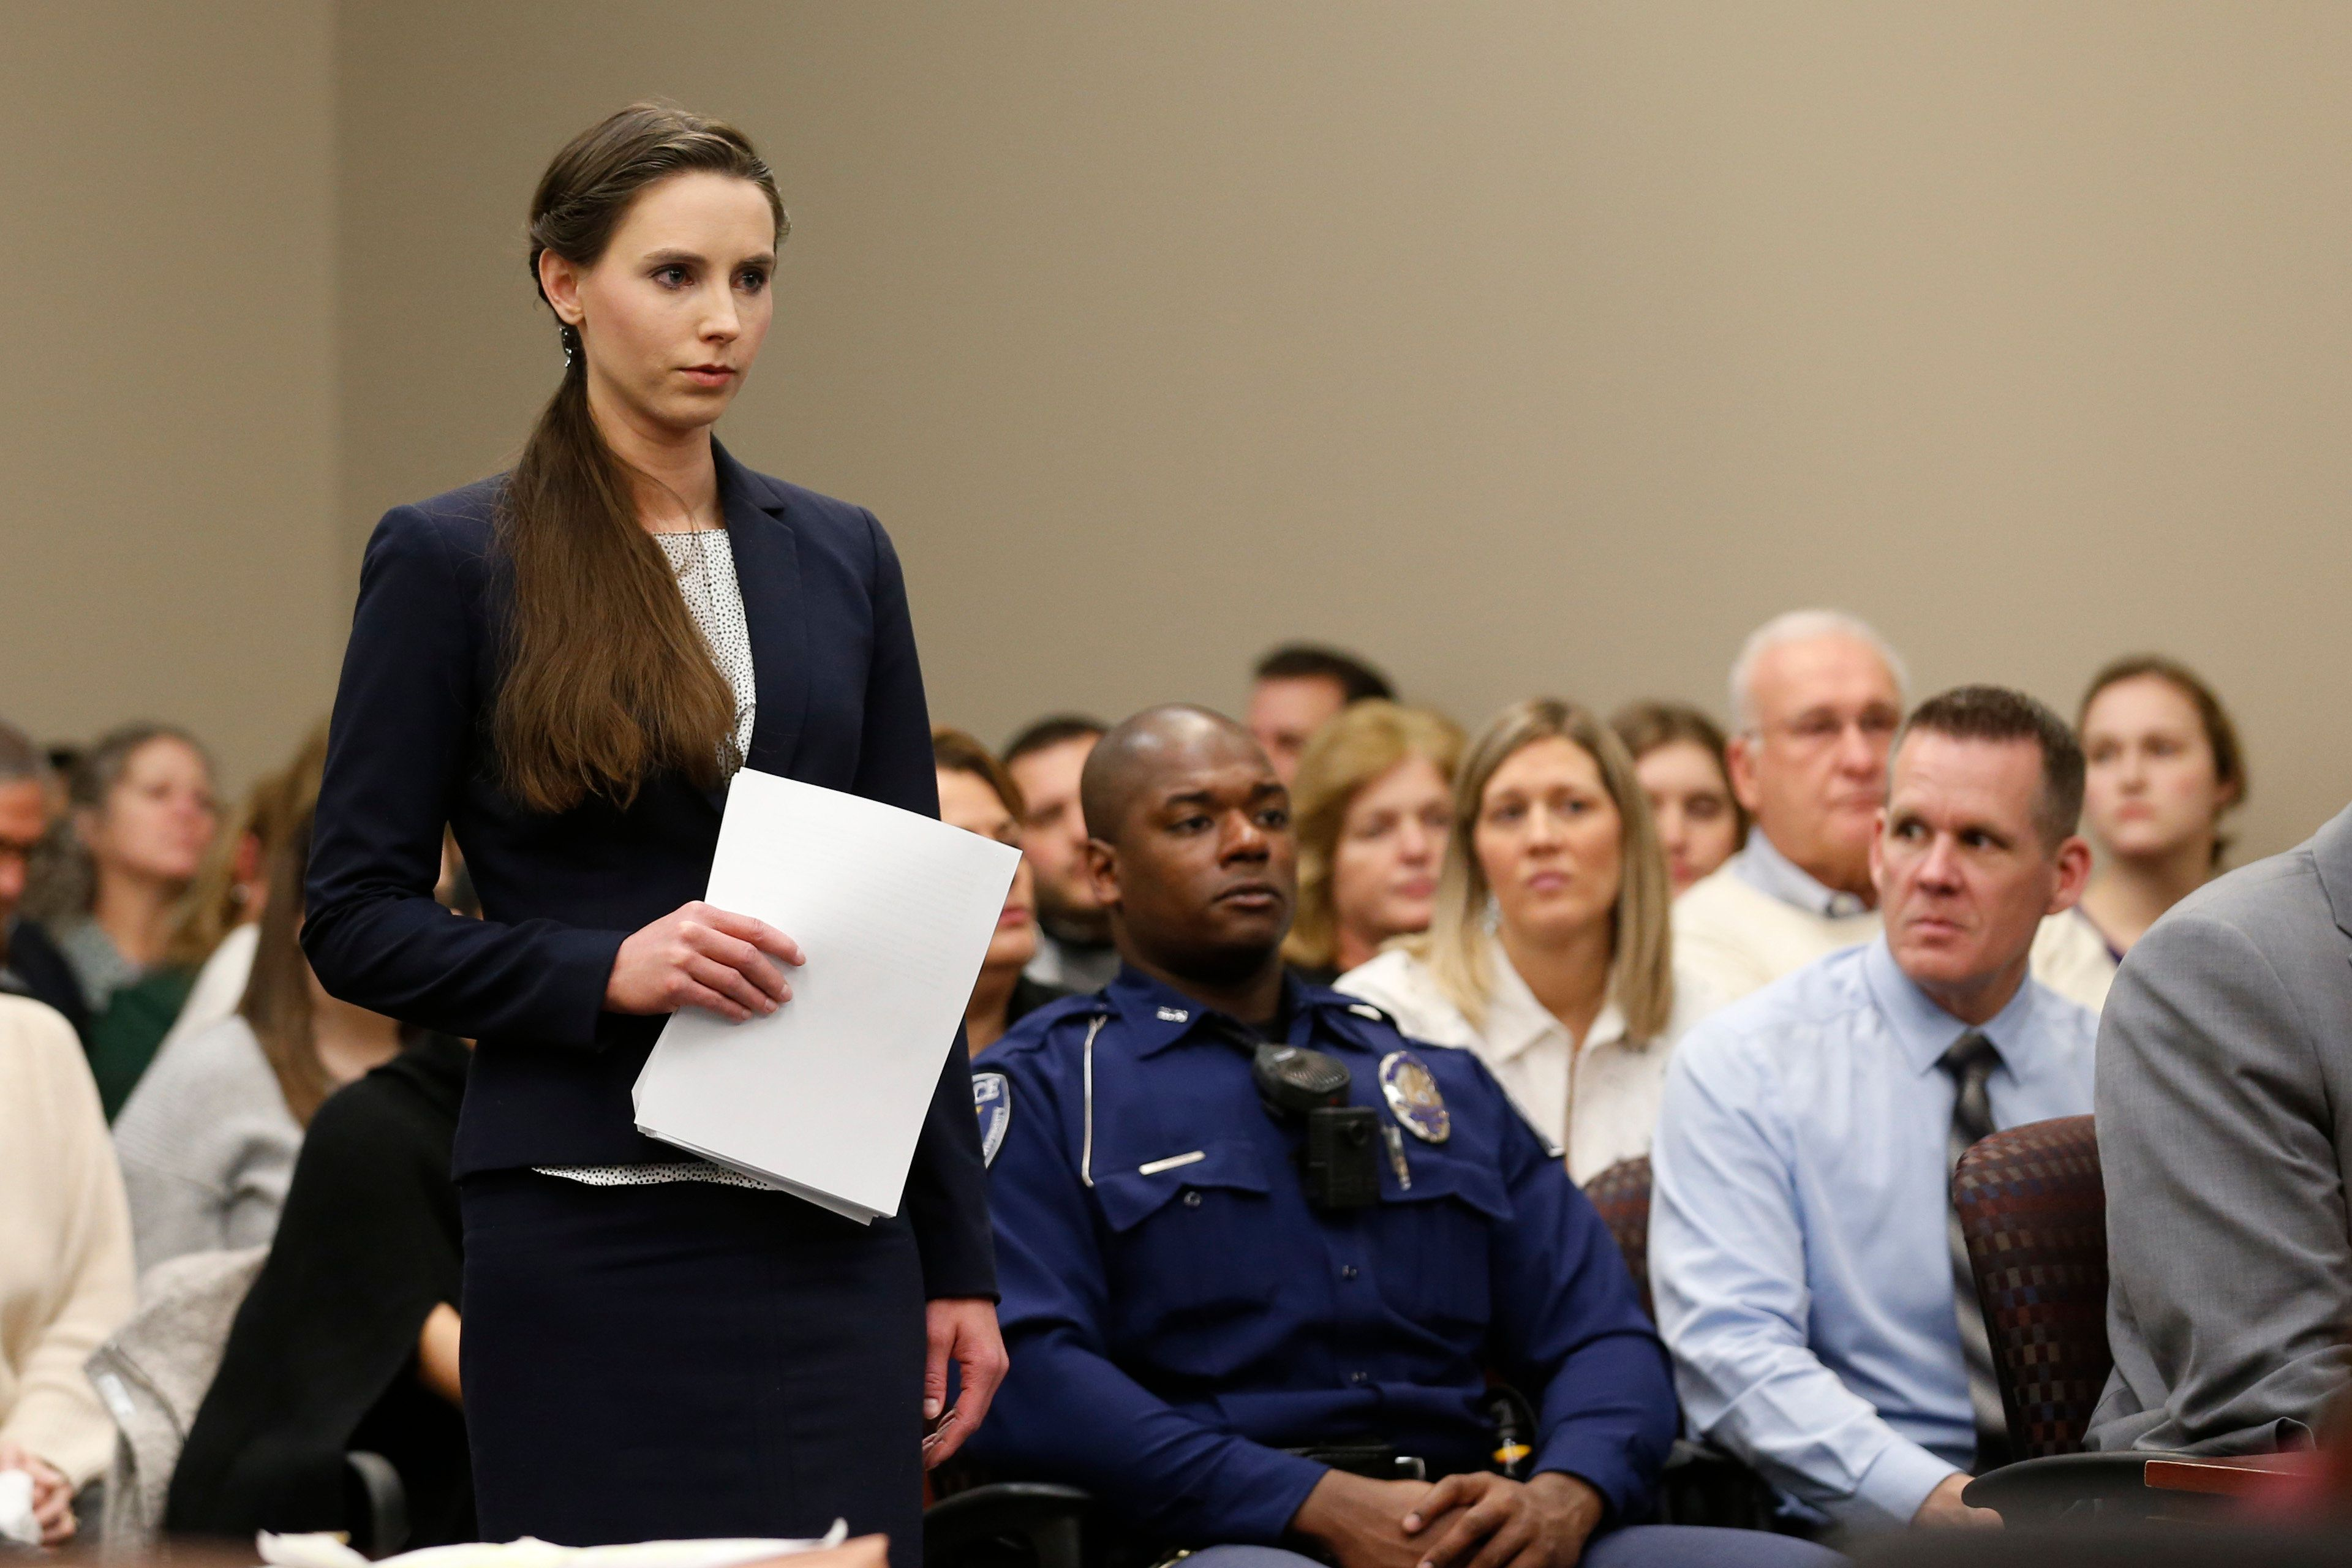 Rachael Denhollander speaks as former Michigan State University and USA Gymnastics doctor Larry Nassar listens to impact statements during the sentencing phase in Ingham County Circuit Court on January 24, 2018 in Lansing, Michigan. More than 100 women and girls accuse Nassar of a pattern of serial abuse dating back two decades, including the Olympic gold-medal winners Simone Biles, Aly Raisman, Gabby Douglas and McKayla Maroney -- who have lashed out at top sporting officials for failing to stop him.    / AFP PHOTO / JEFF KOWALSKY        (Photo credit should read JEFF KOWALSKY/AFP/Getty Images)